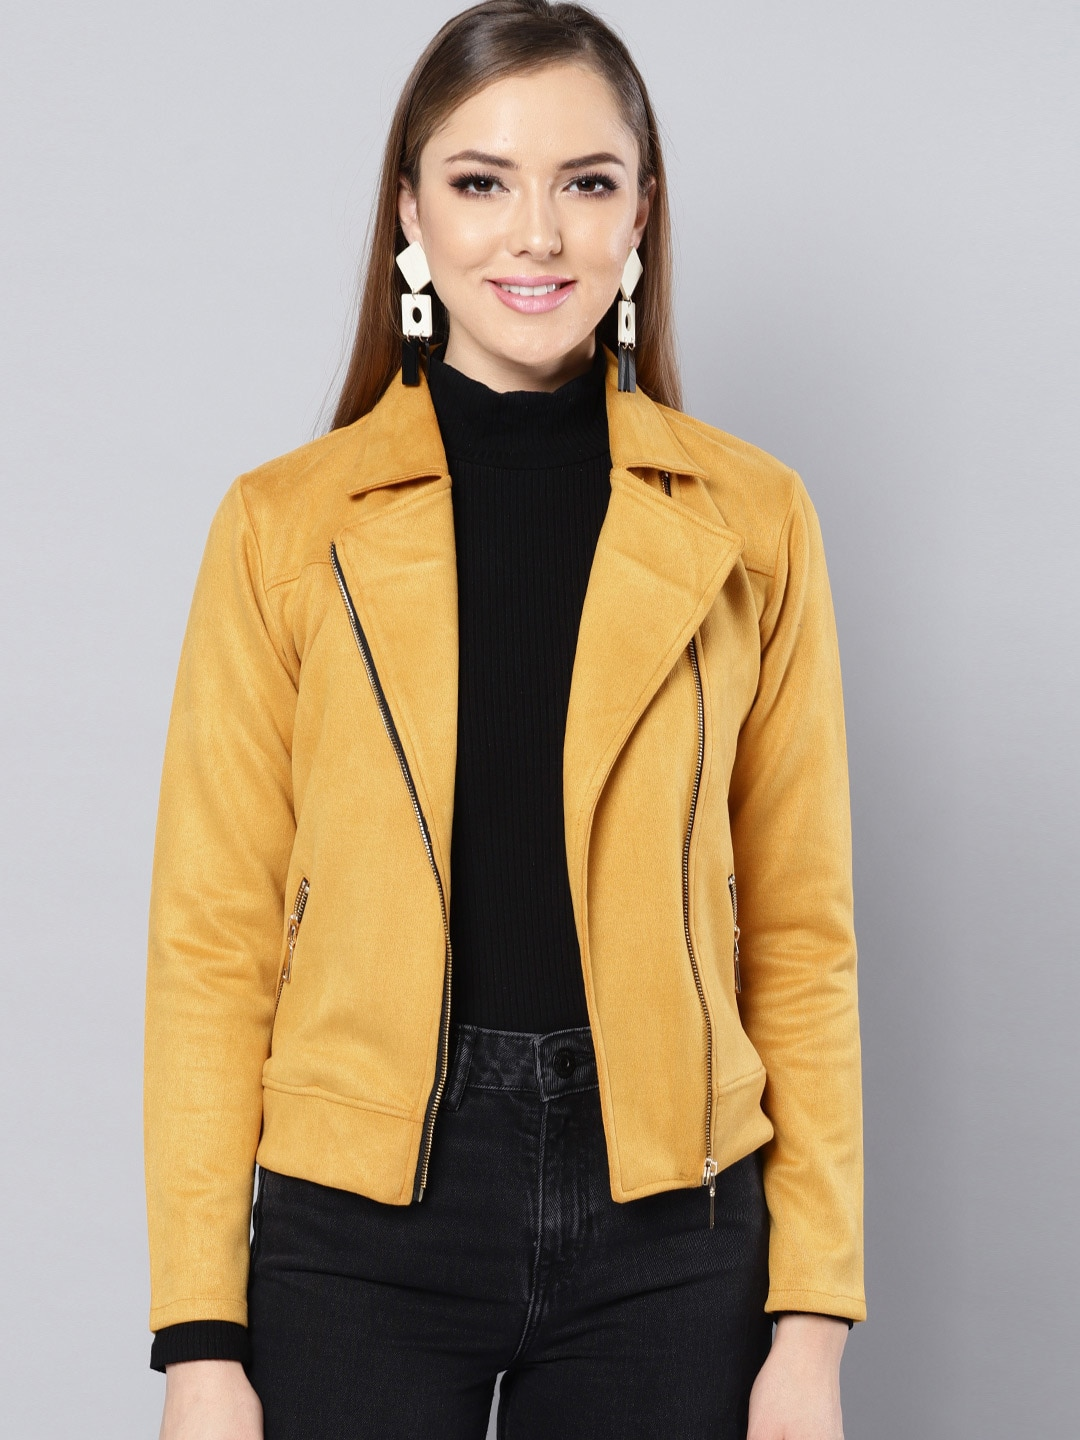 3b85f874fe046 Harpa Jackets - Buy Harpa Jackets online in India